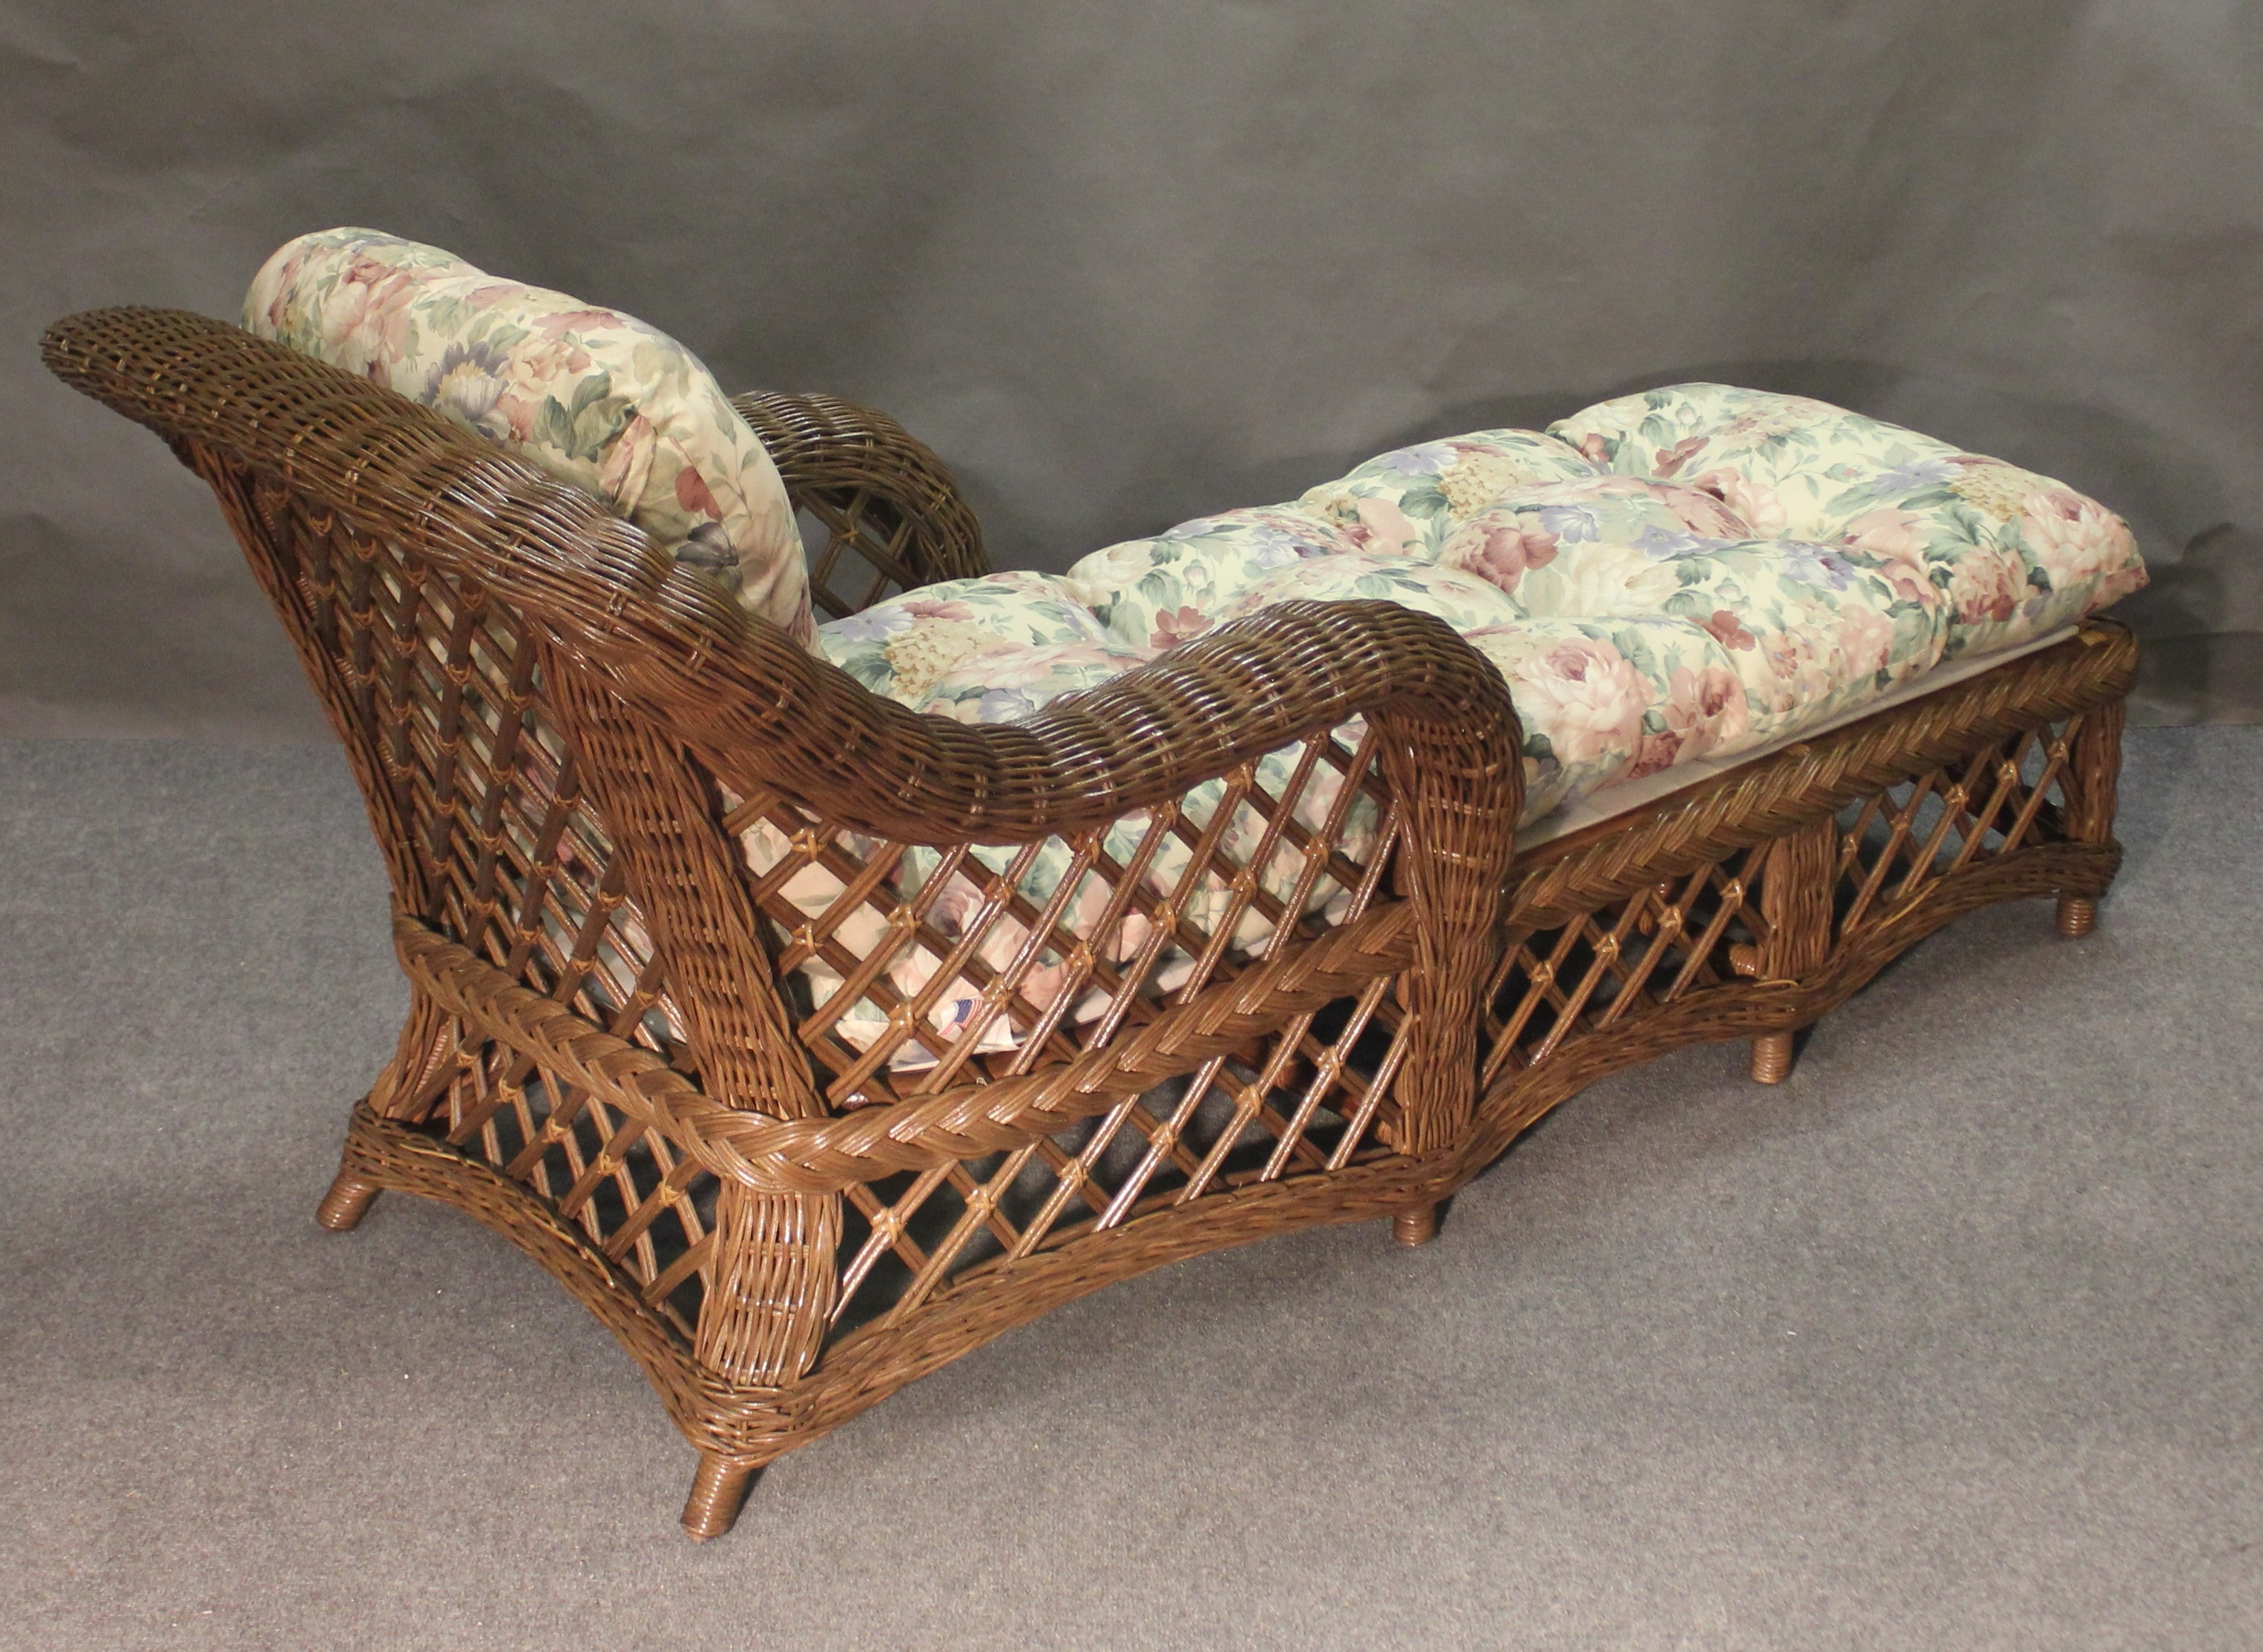 Latest Cape Cod Wicker Chaise Lounge, All About Wicker For Wicker Chaise Lounges (View 2 of 15)